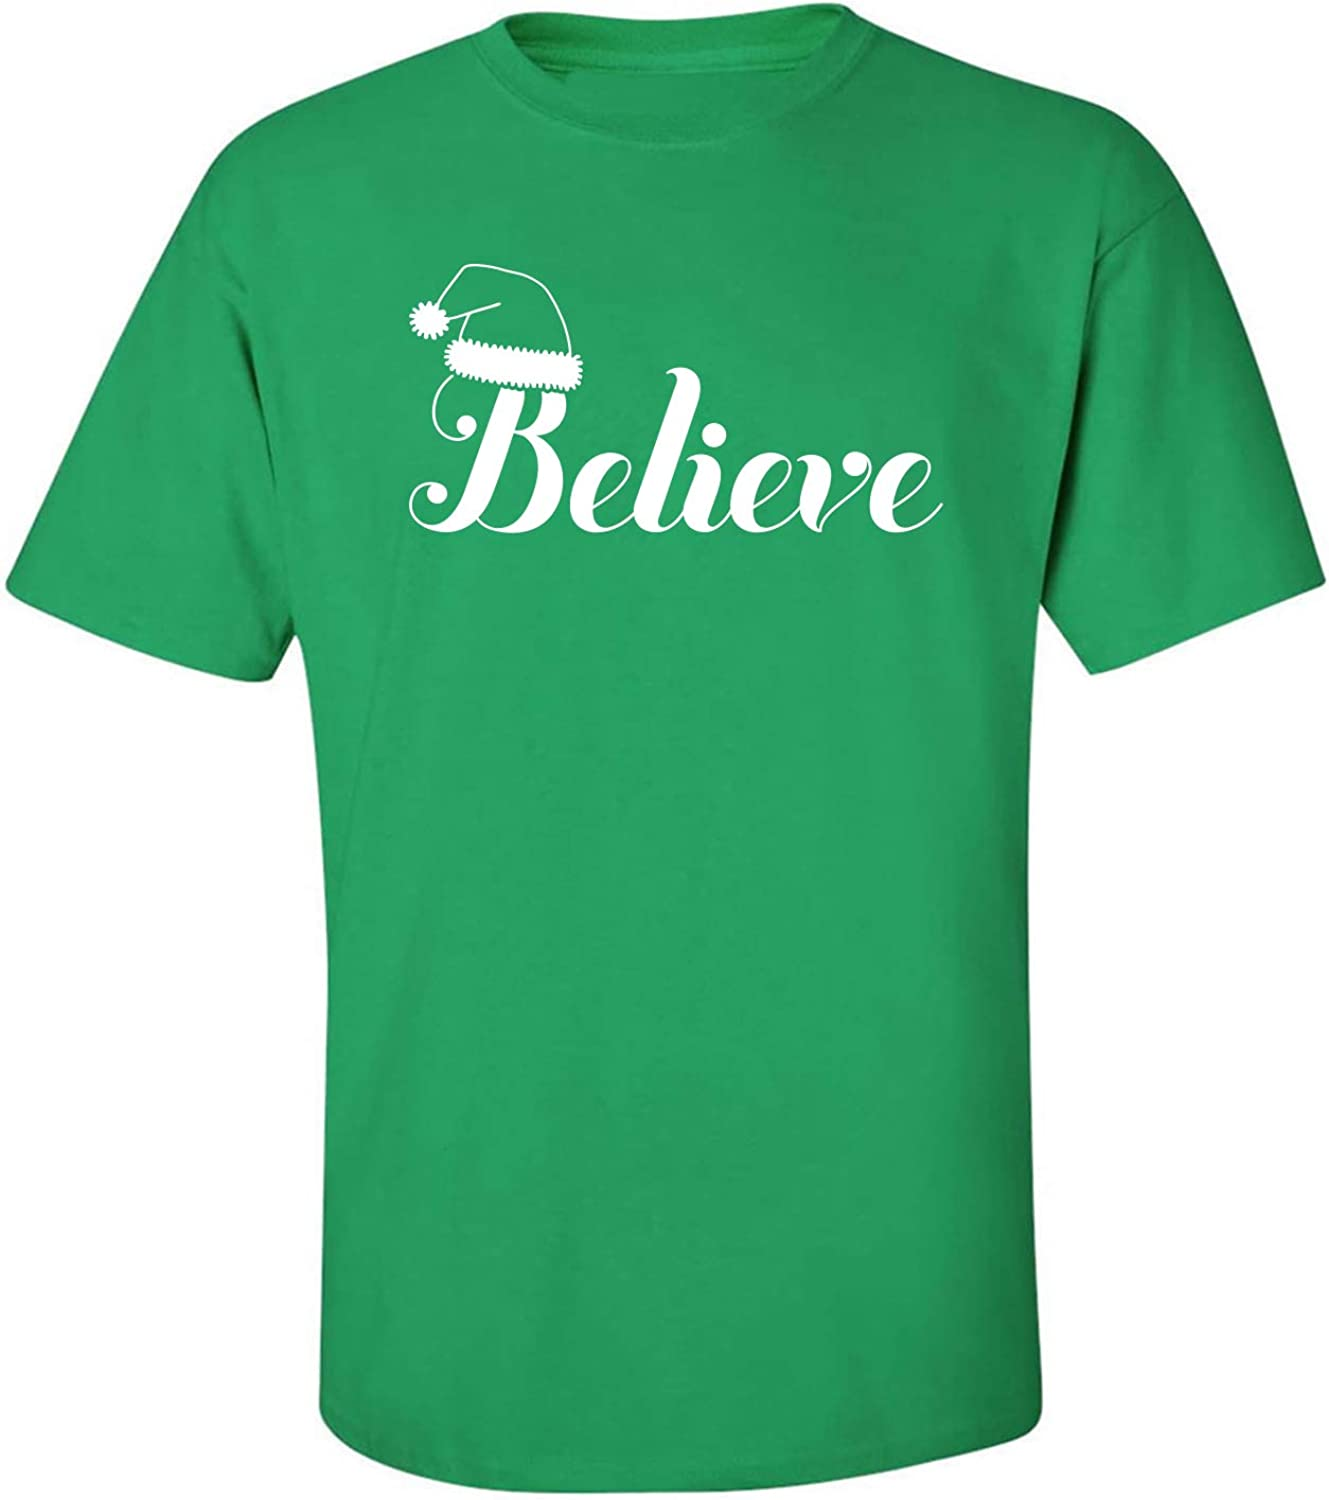 Believe Adult T-Shirt in Kelly Green - XXXXX-Large